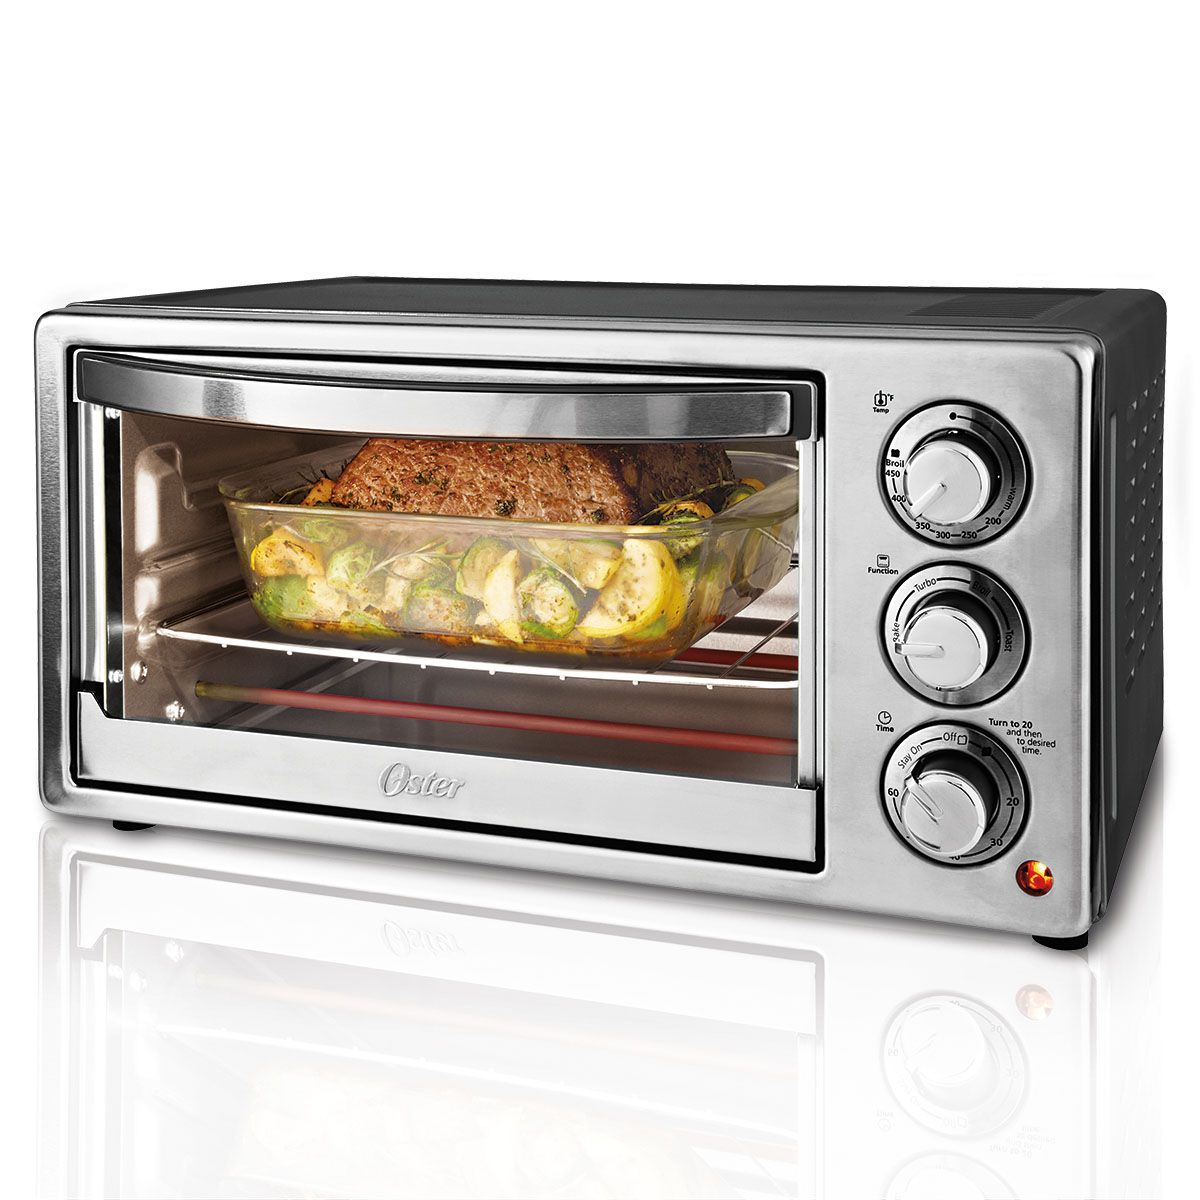 Coming Soon Oster 6 Slice Convection Toaster Oven Tssttvf817